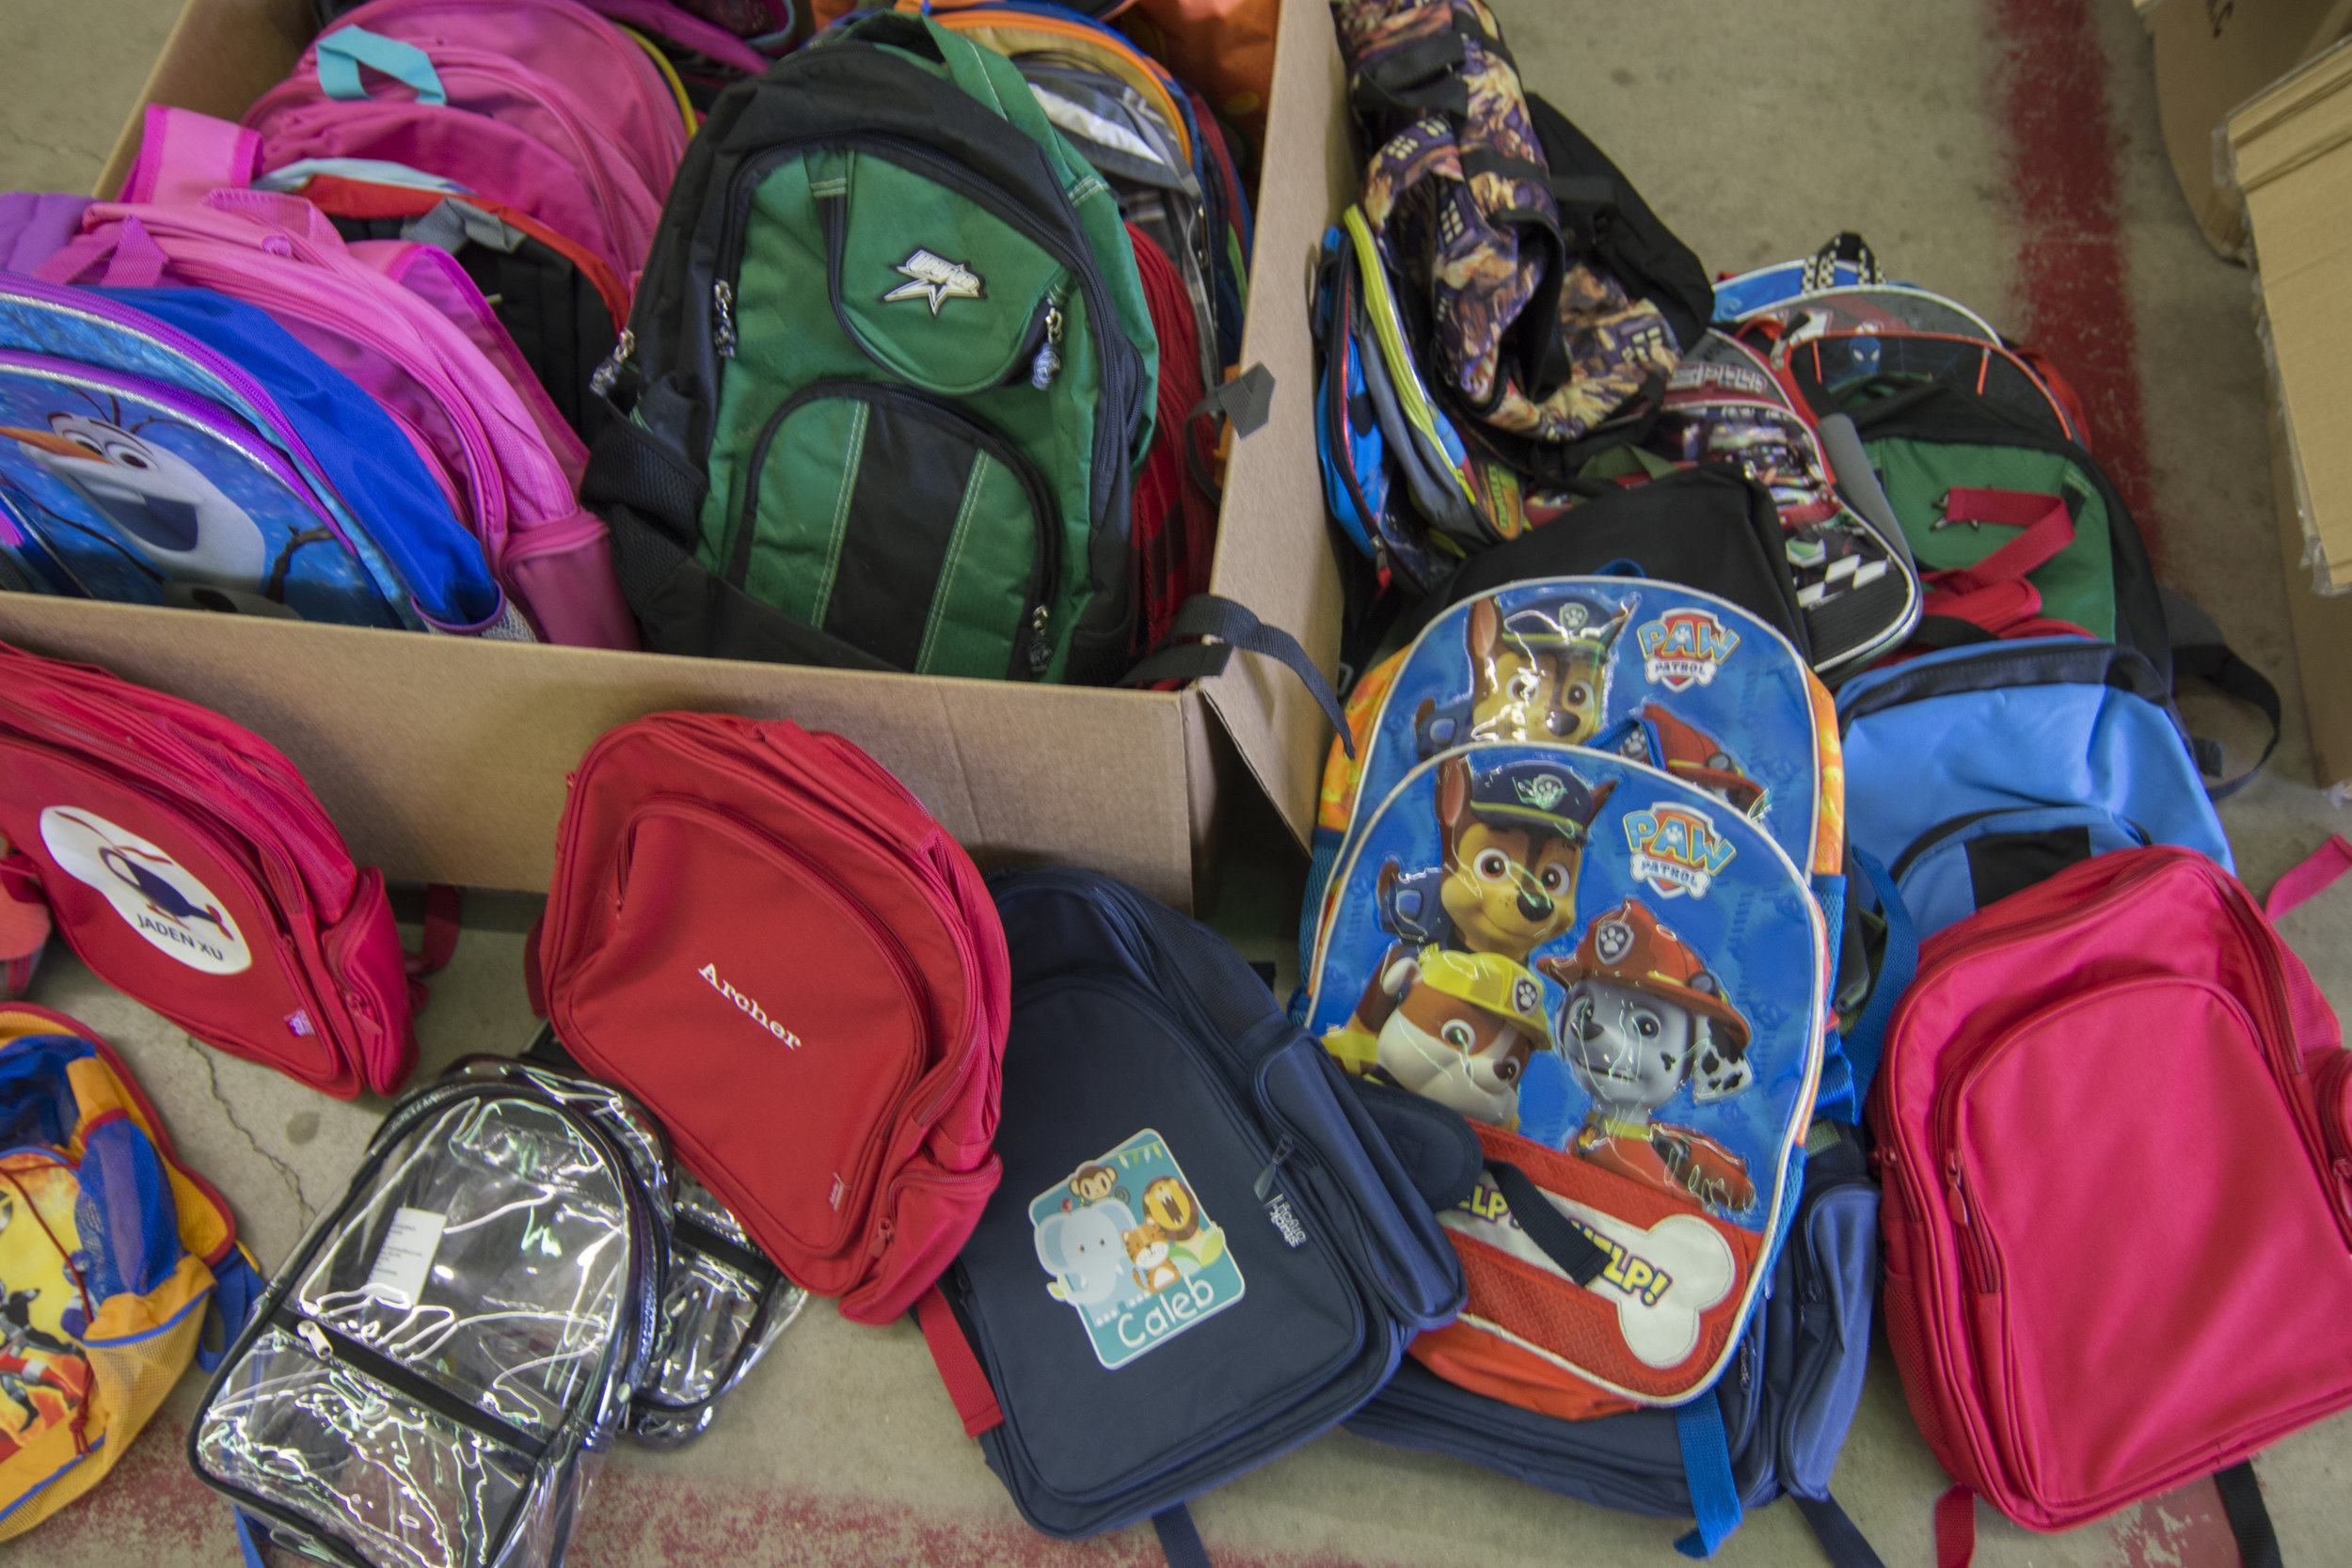 We handed out backpacks to over 100 children at our Back to School event this year.